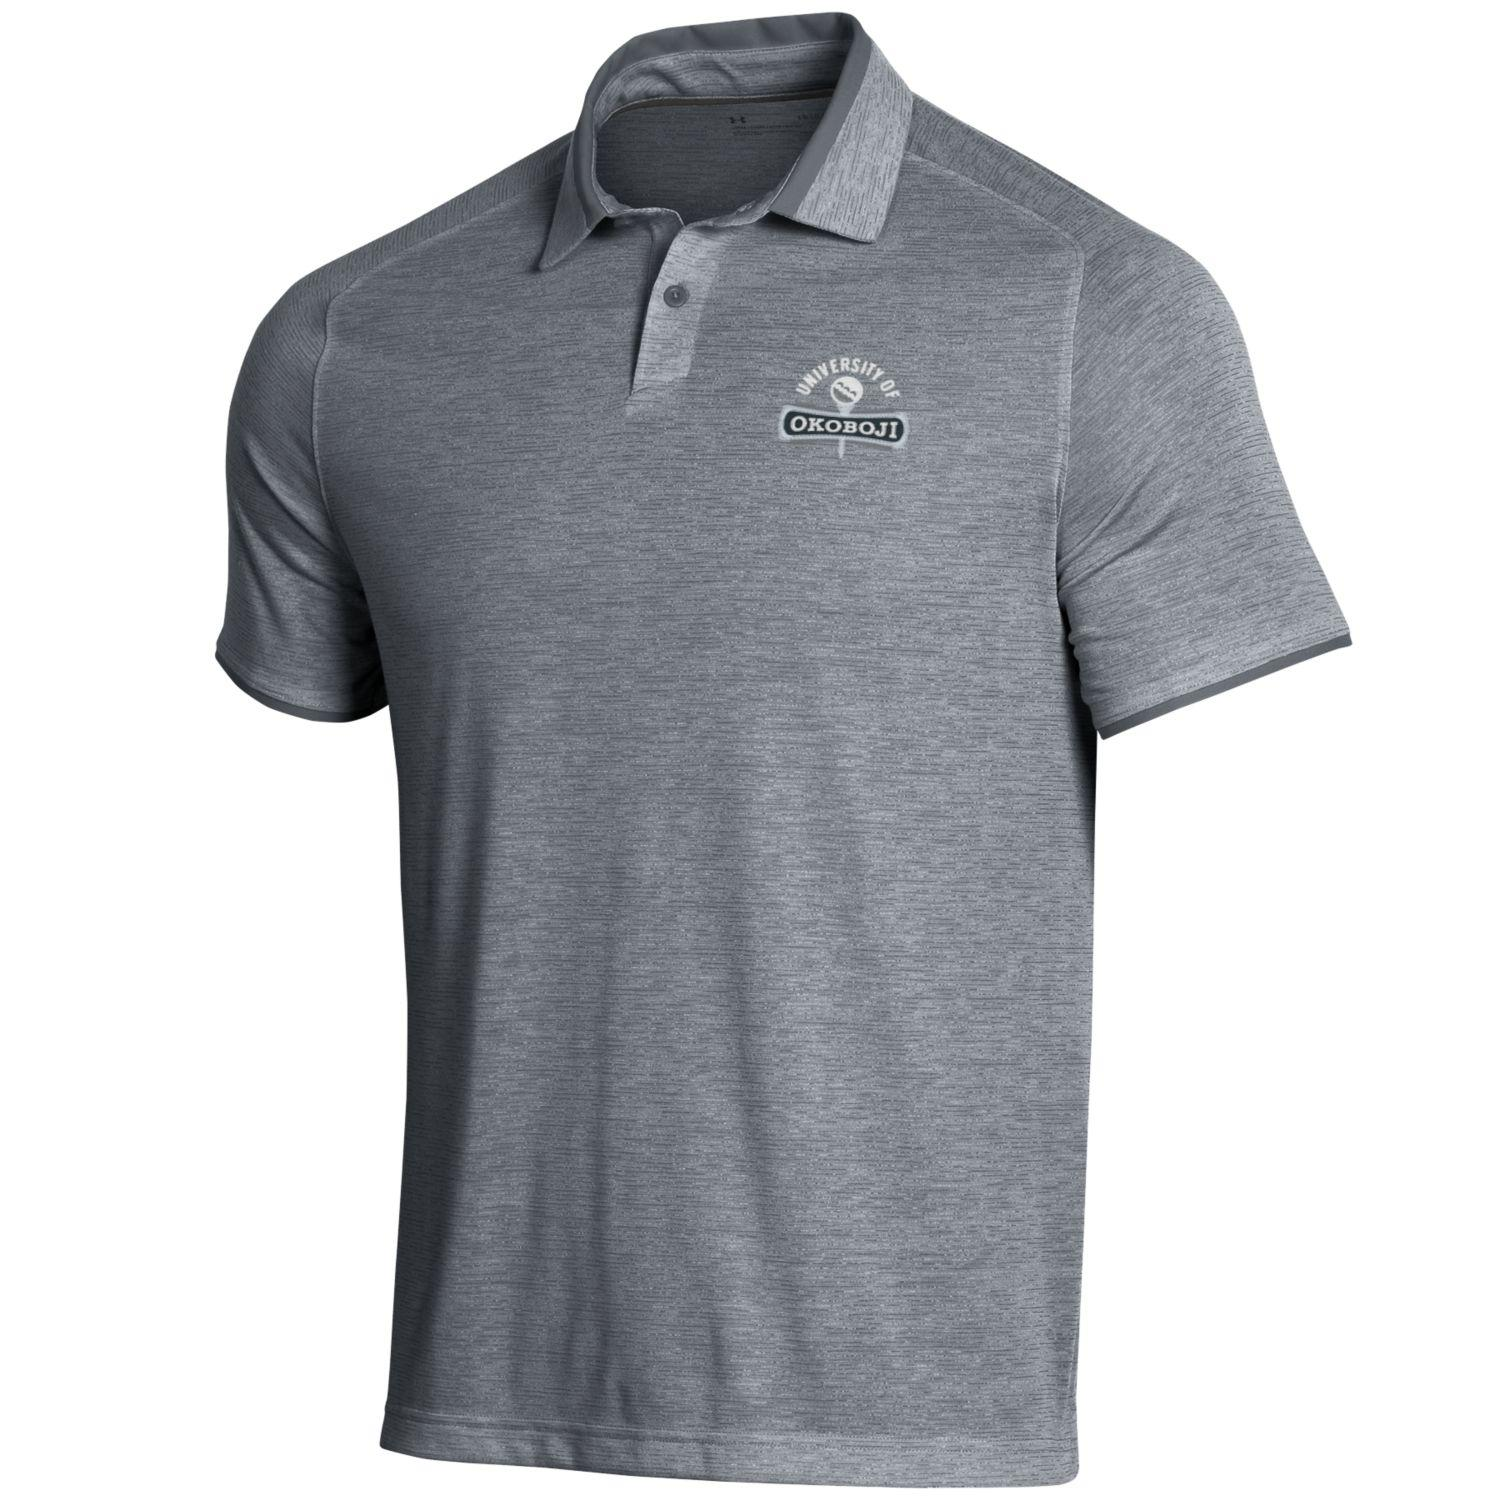 Okoboji Under Armour Streaker Polo - Pitch Grey